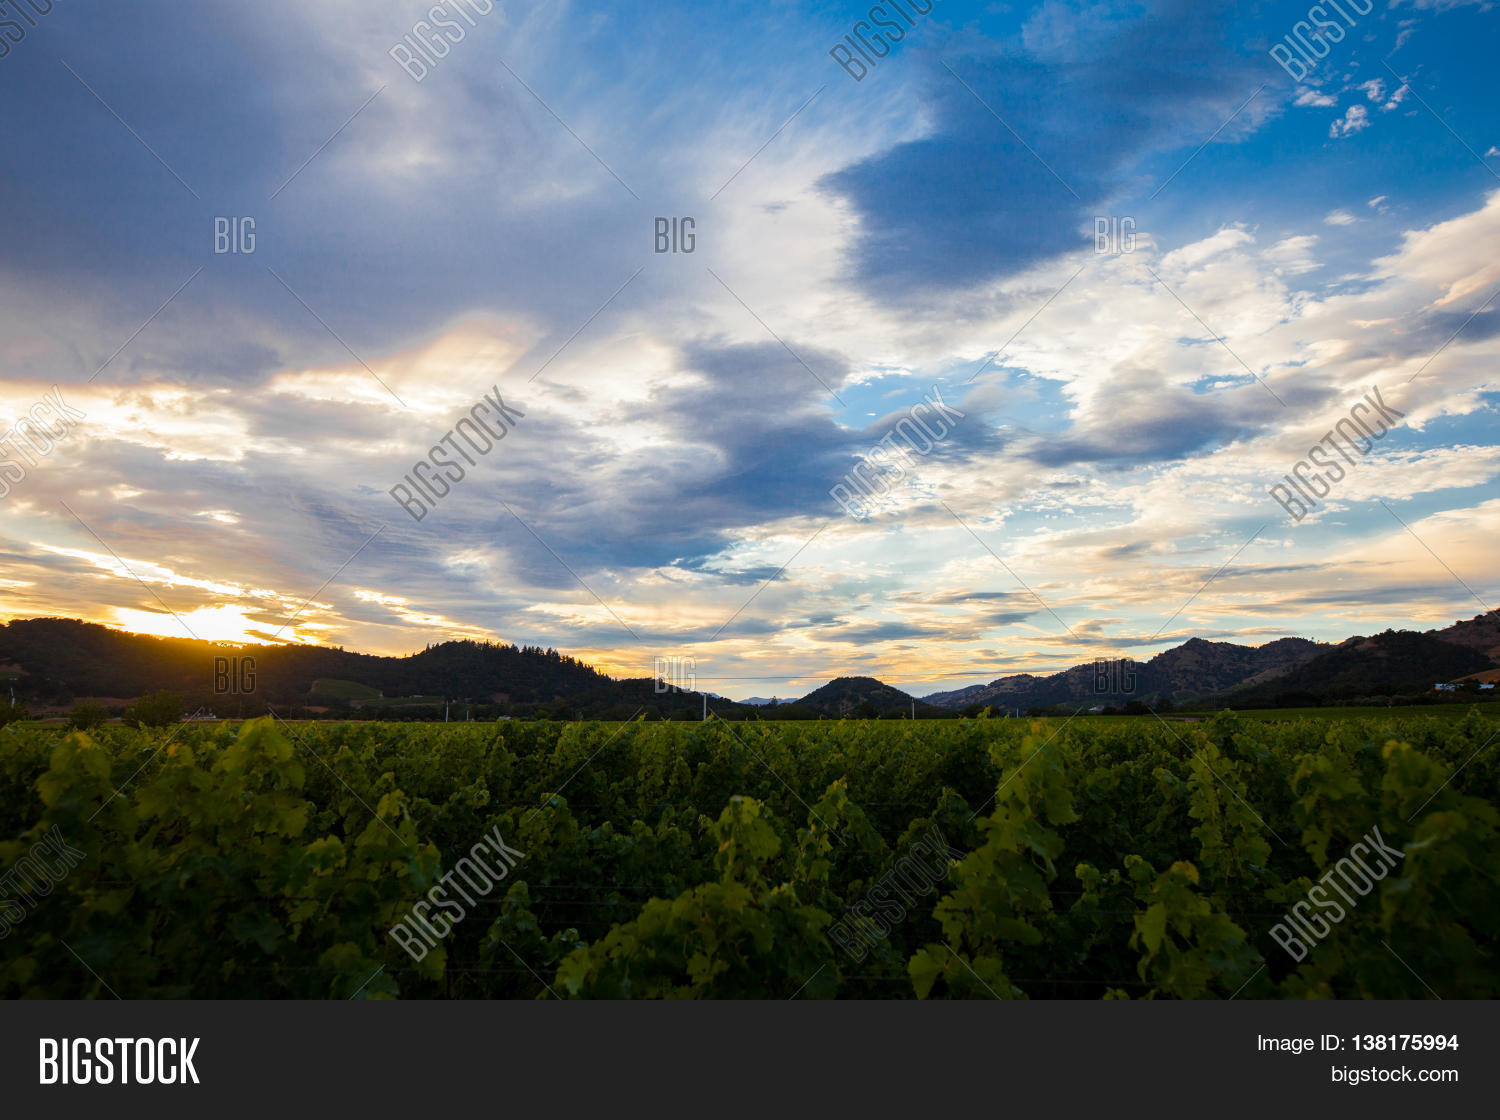 Colorful Clouds Sunset Image Photo Free Trial Bigstock